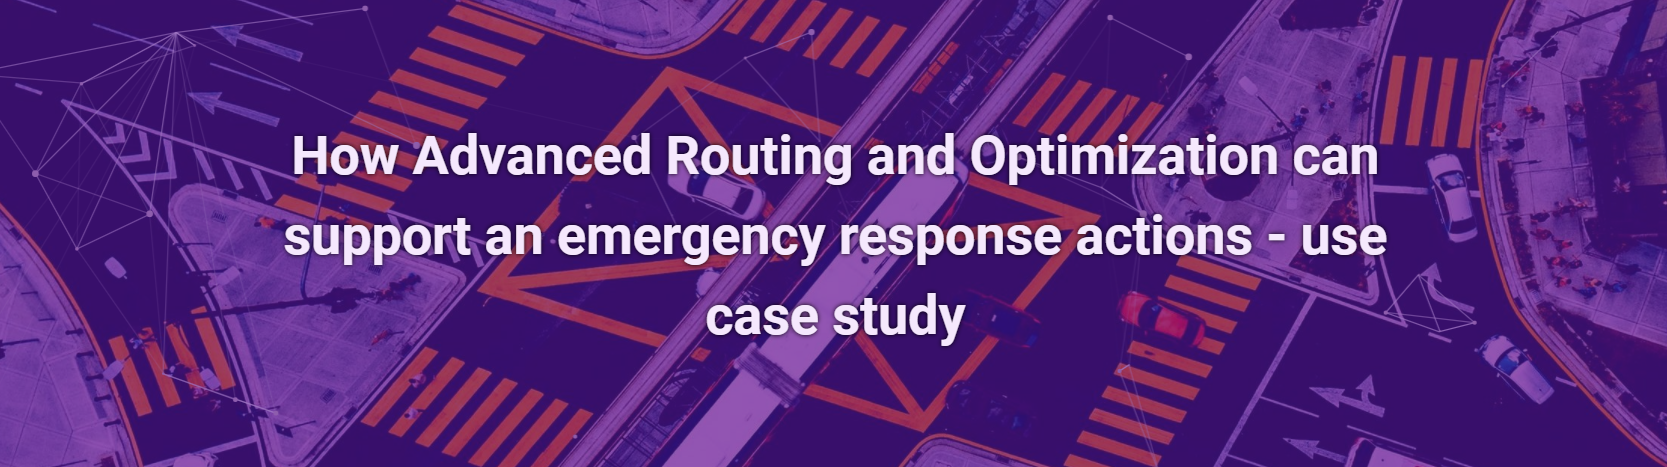 How Advanced Routing and Optimization can support an emergency response actions – use case study